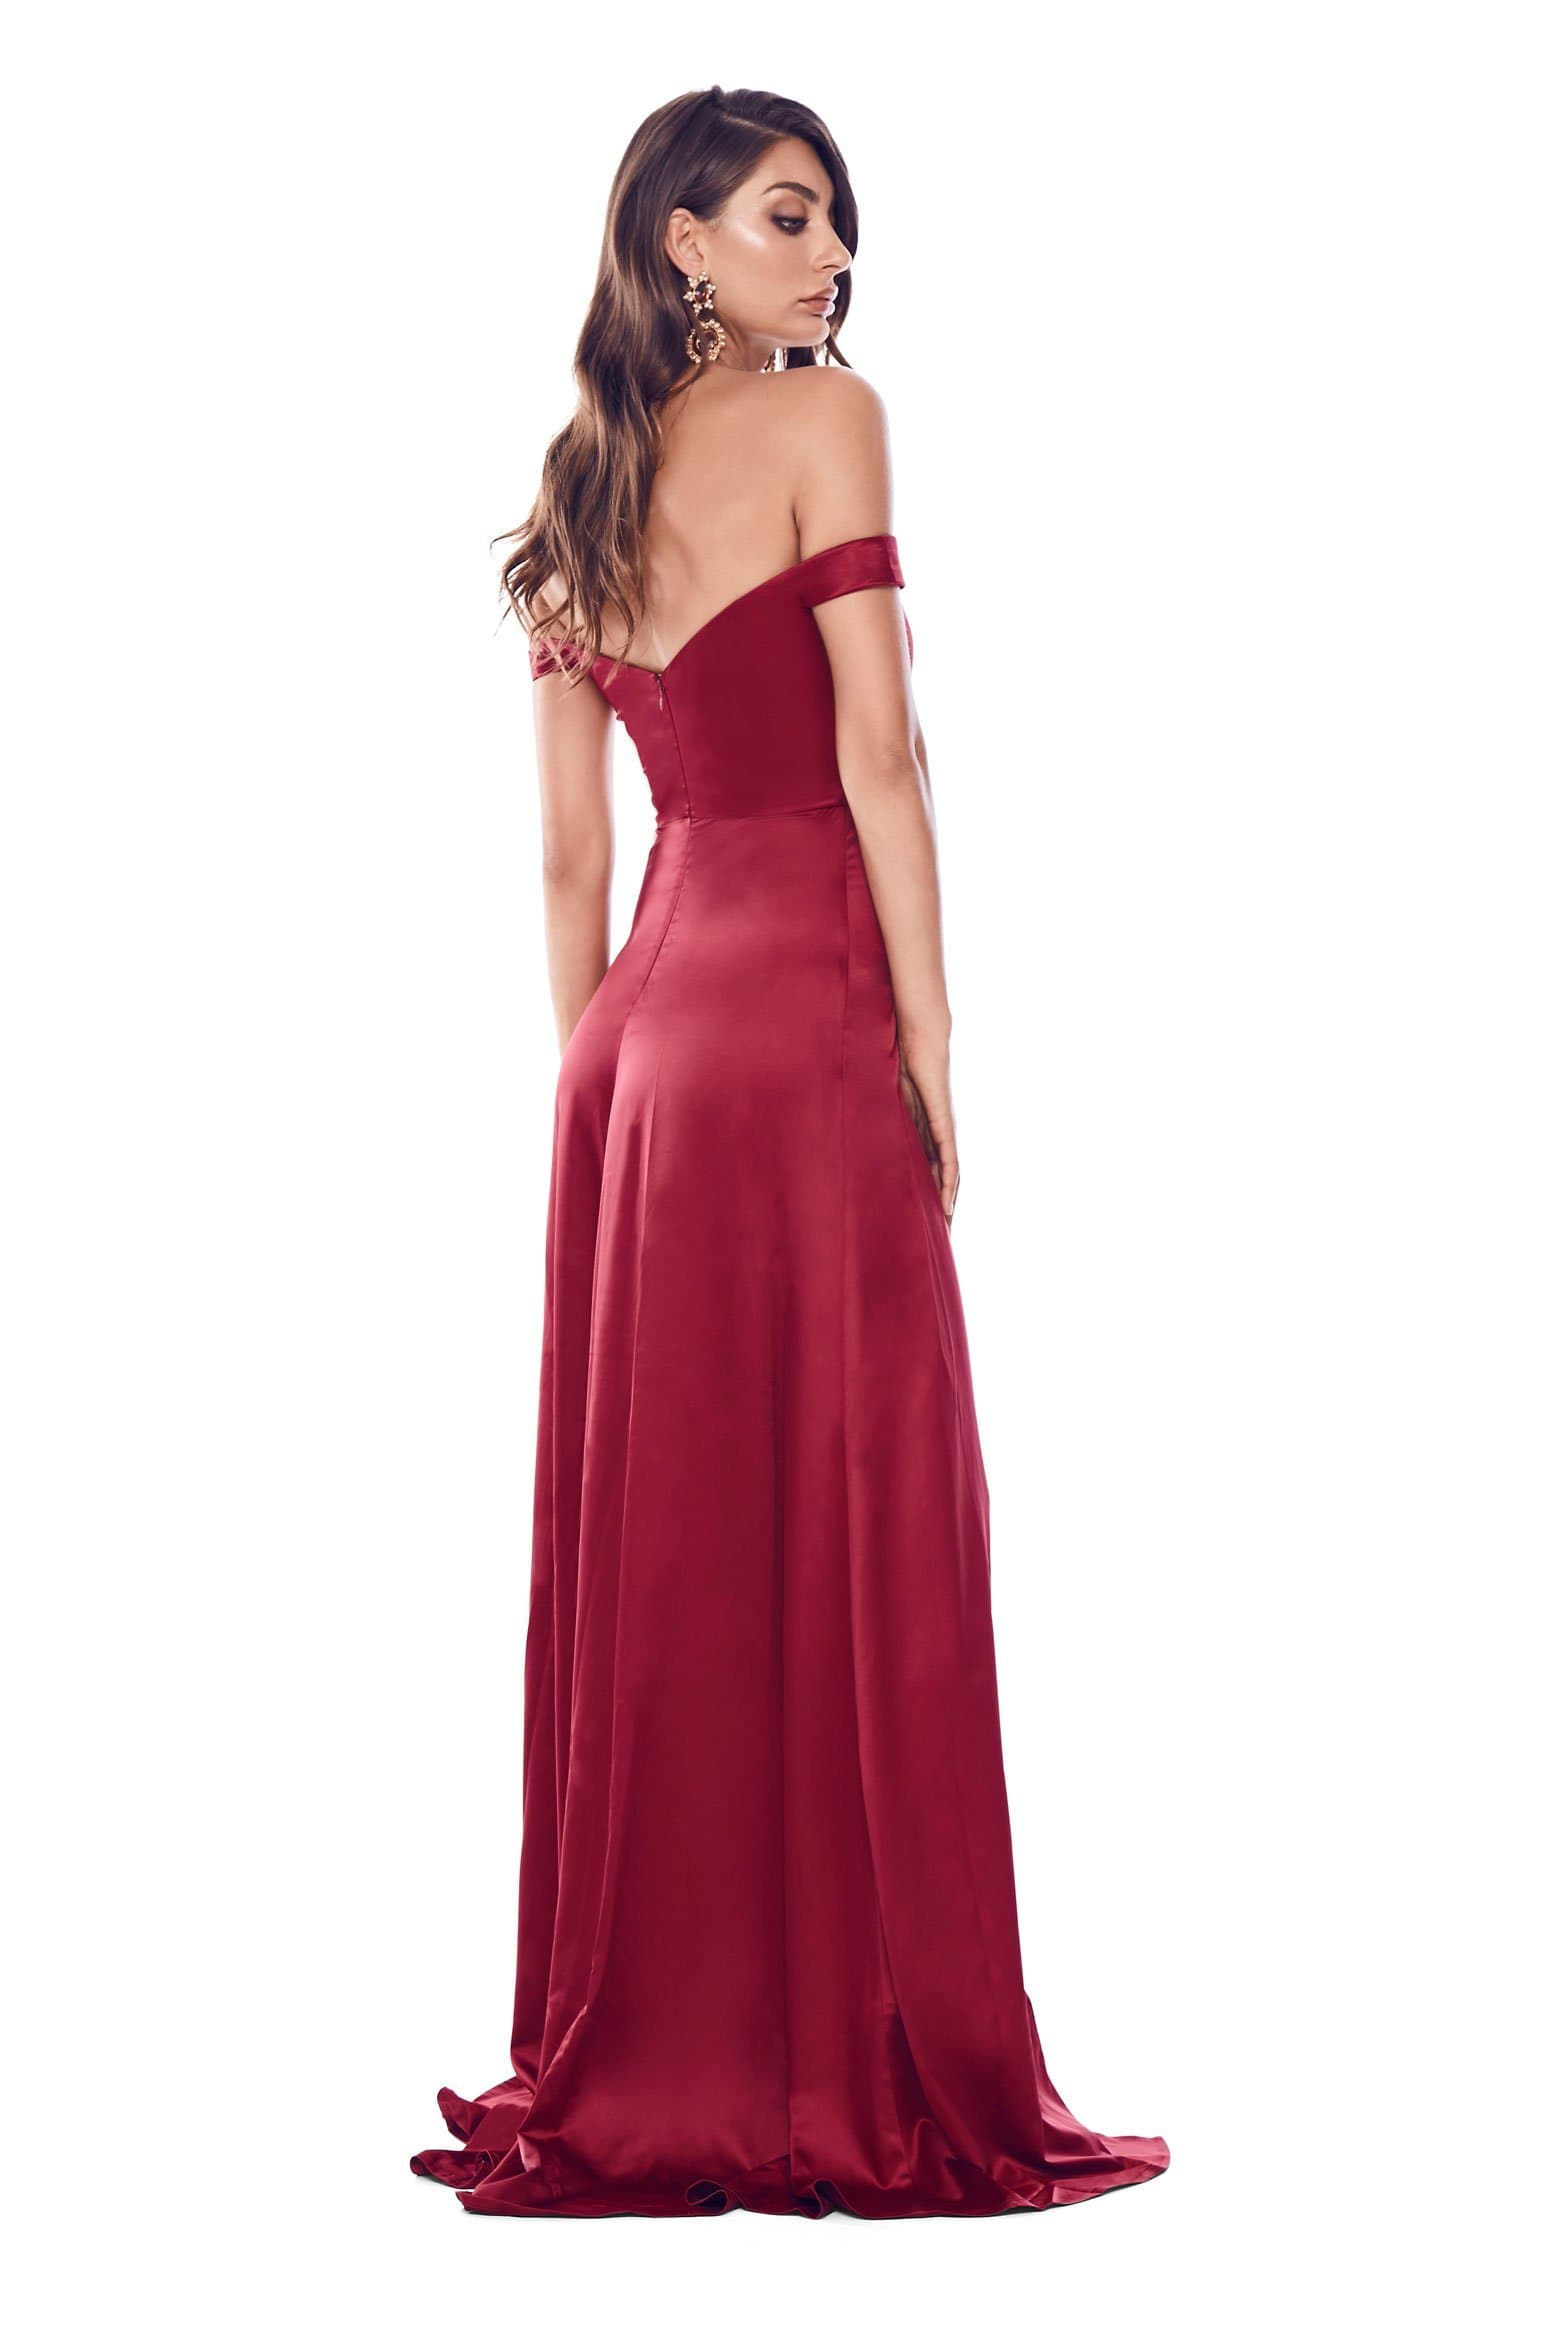 Florentina Gown - Deep Red Preorder For End Of May